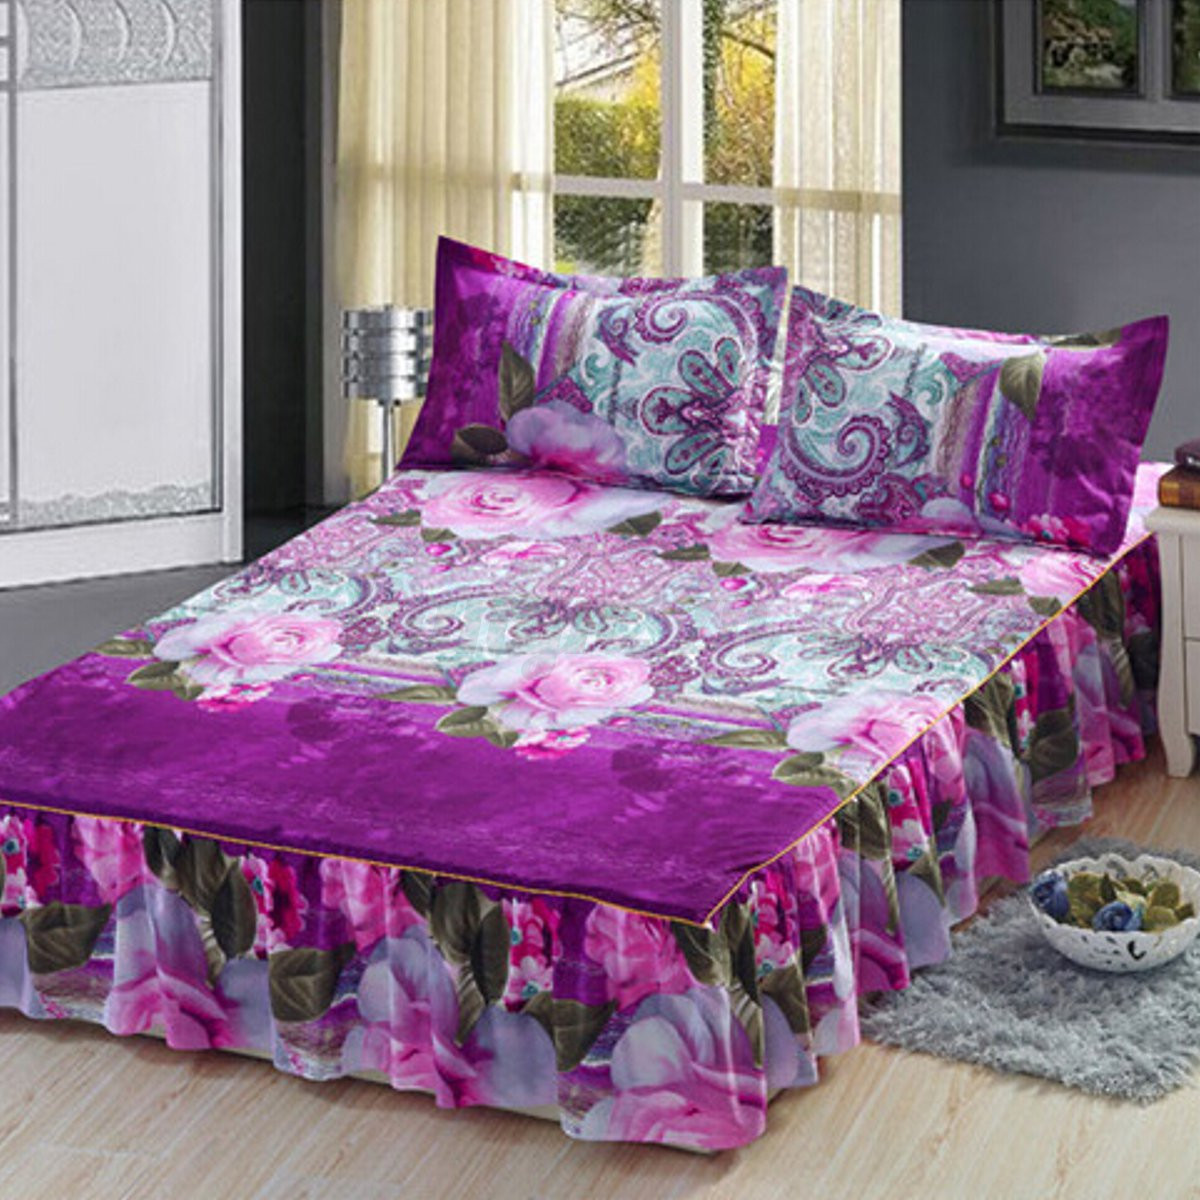 4pcs parure de lit 3d fleur housse couette drap couverture taie oreille 27 style ebay. Black Bedroom Furniture Sets. Home Design Ideas